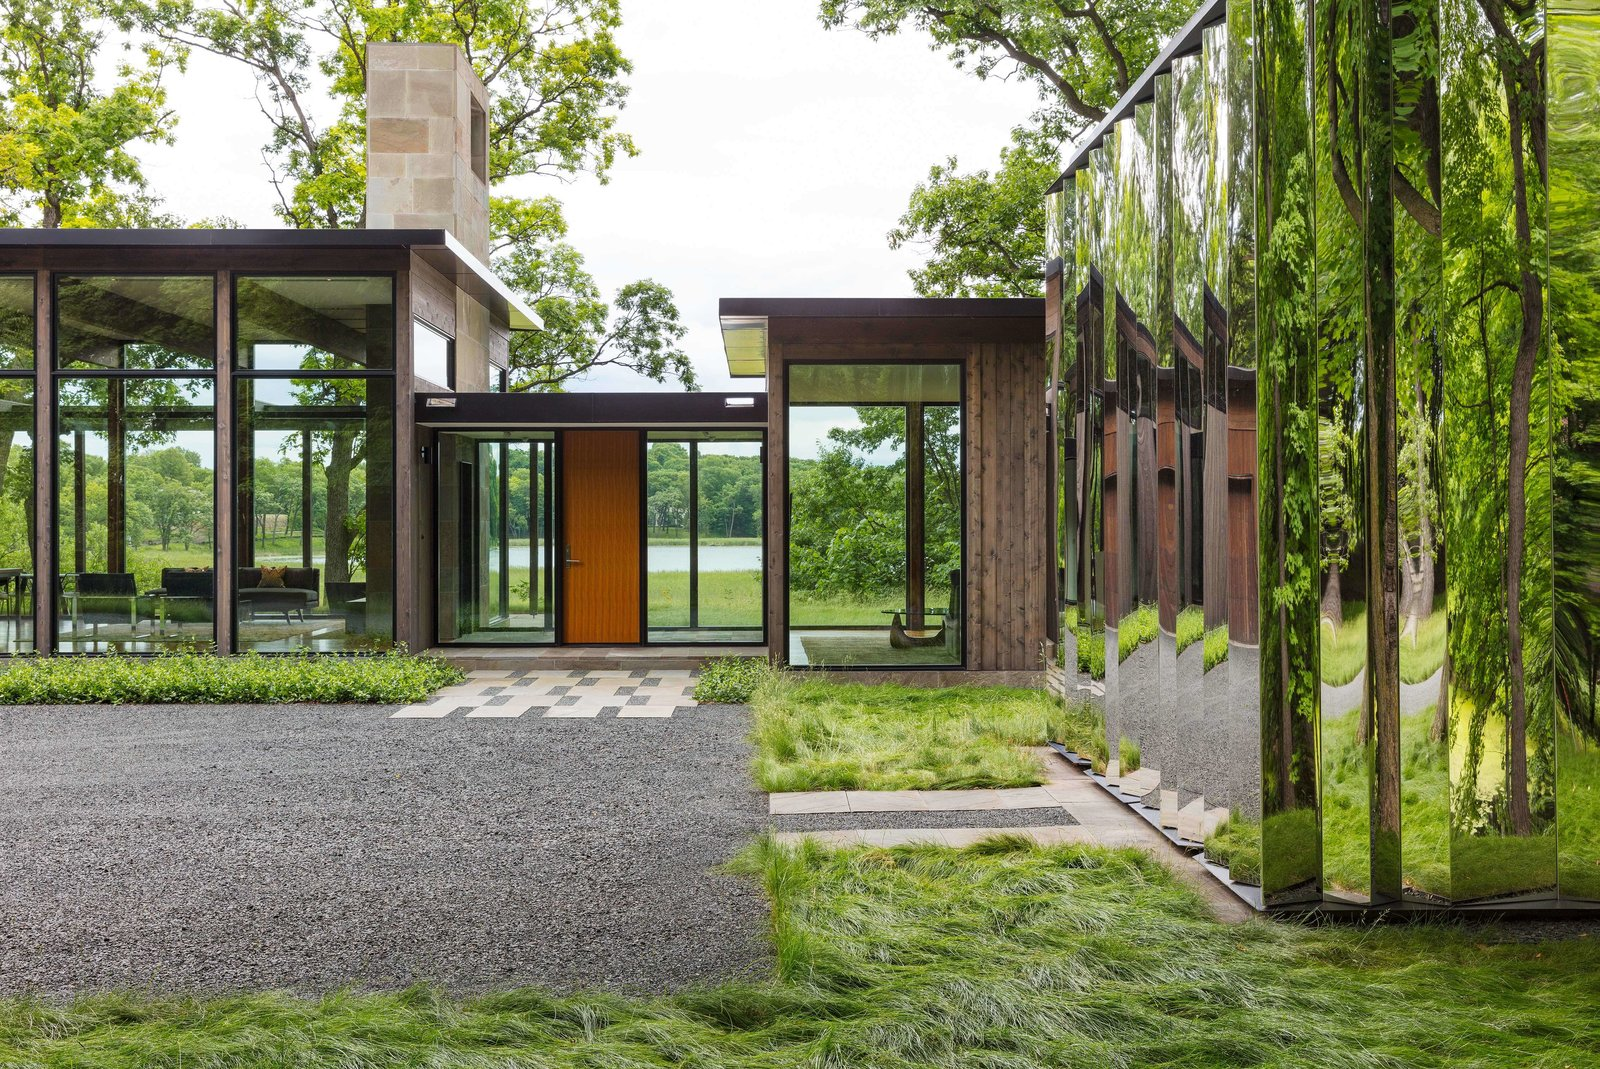 This glass house and shiny shed merge with nature in for Building a house in minnesota